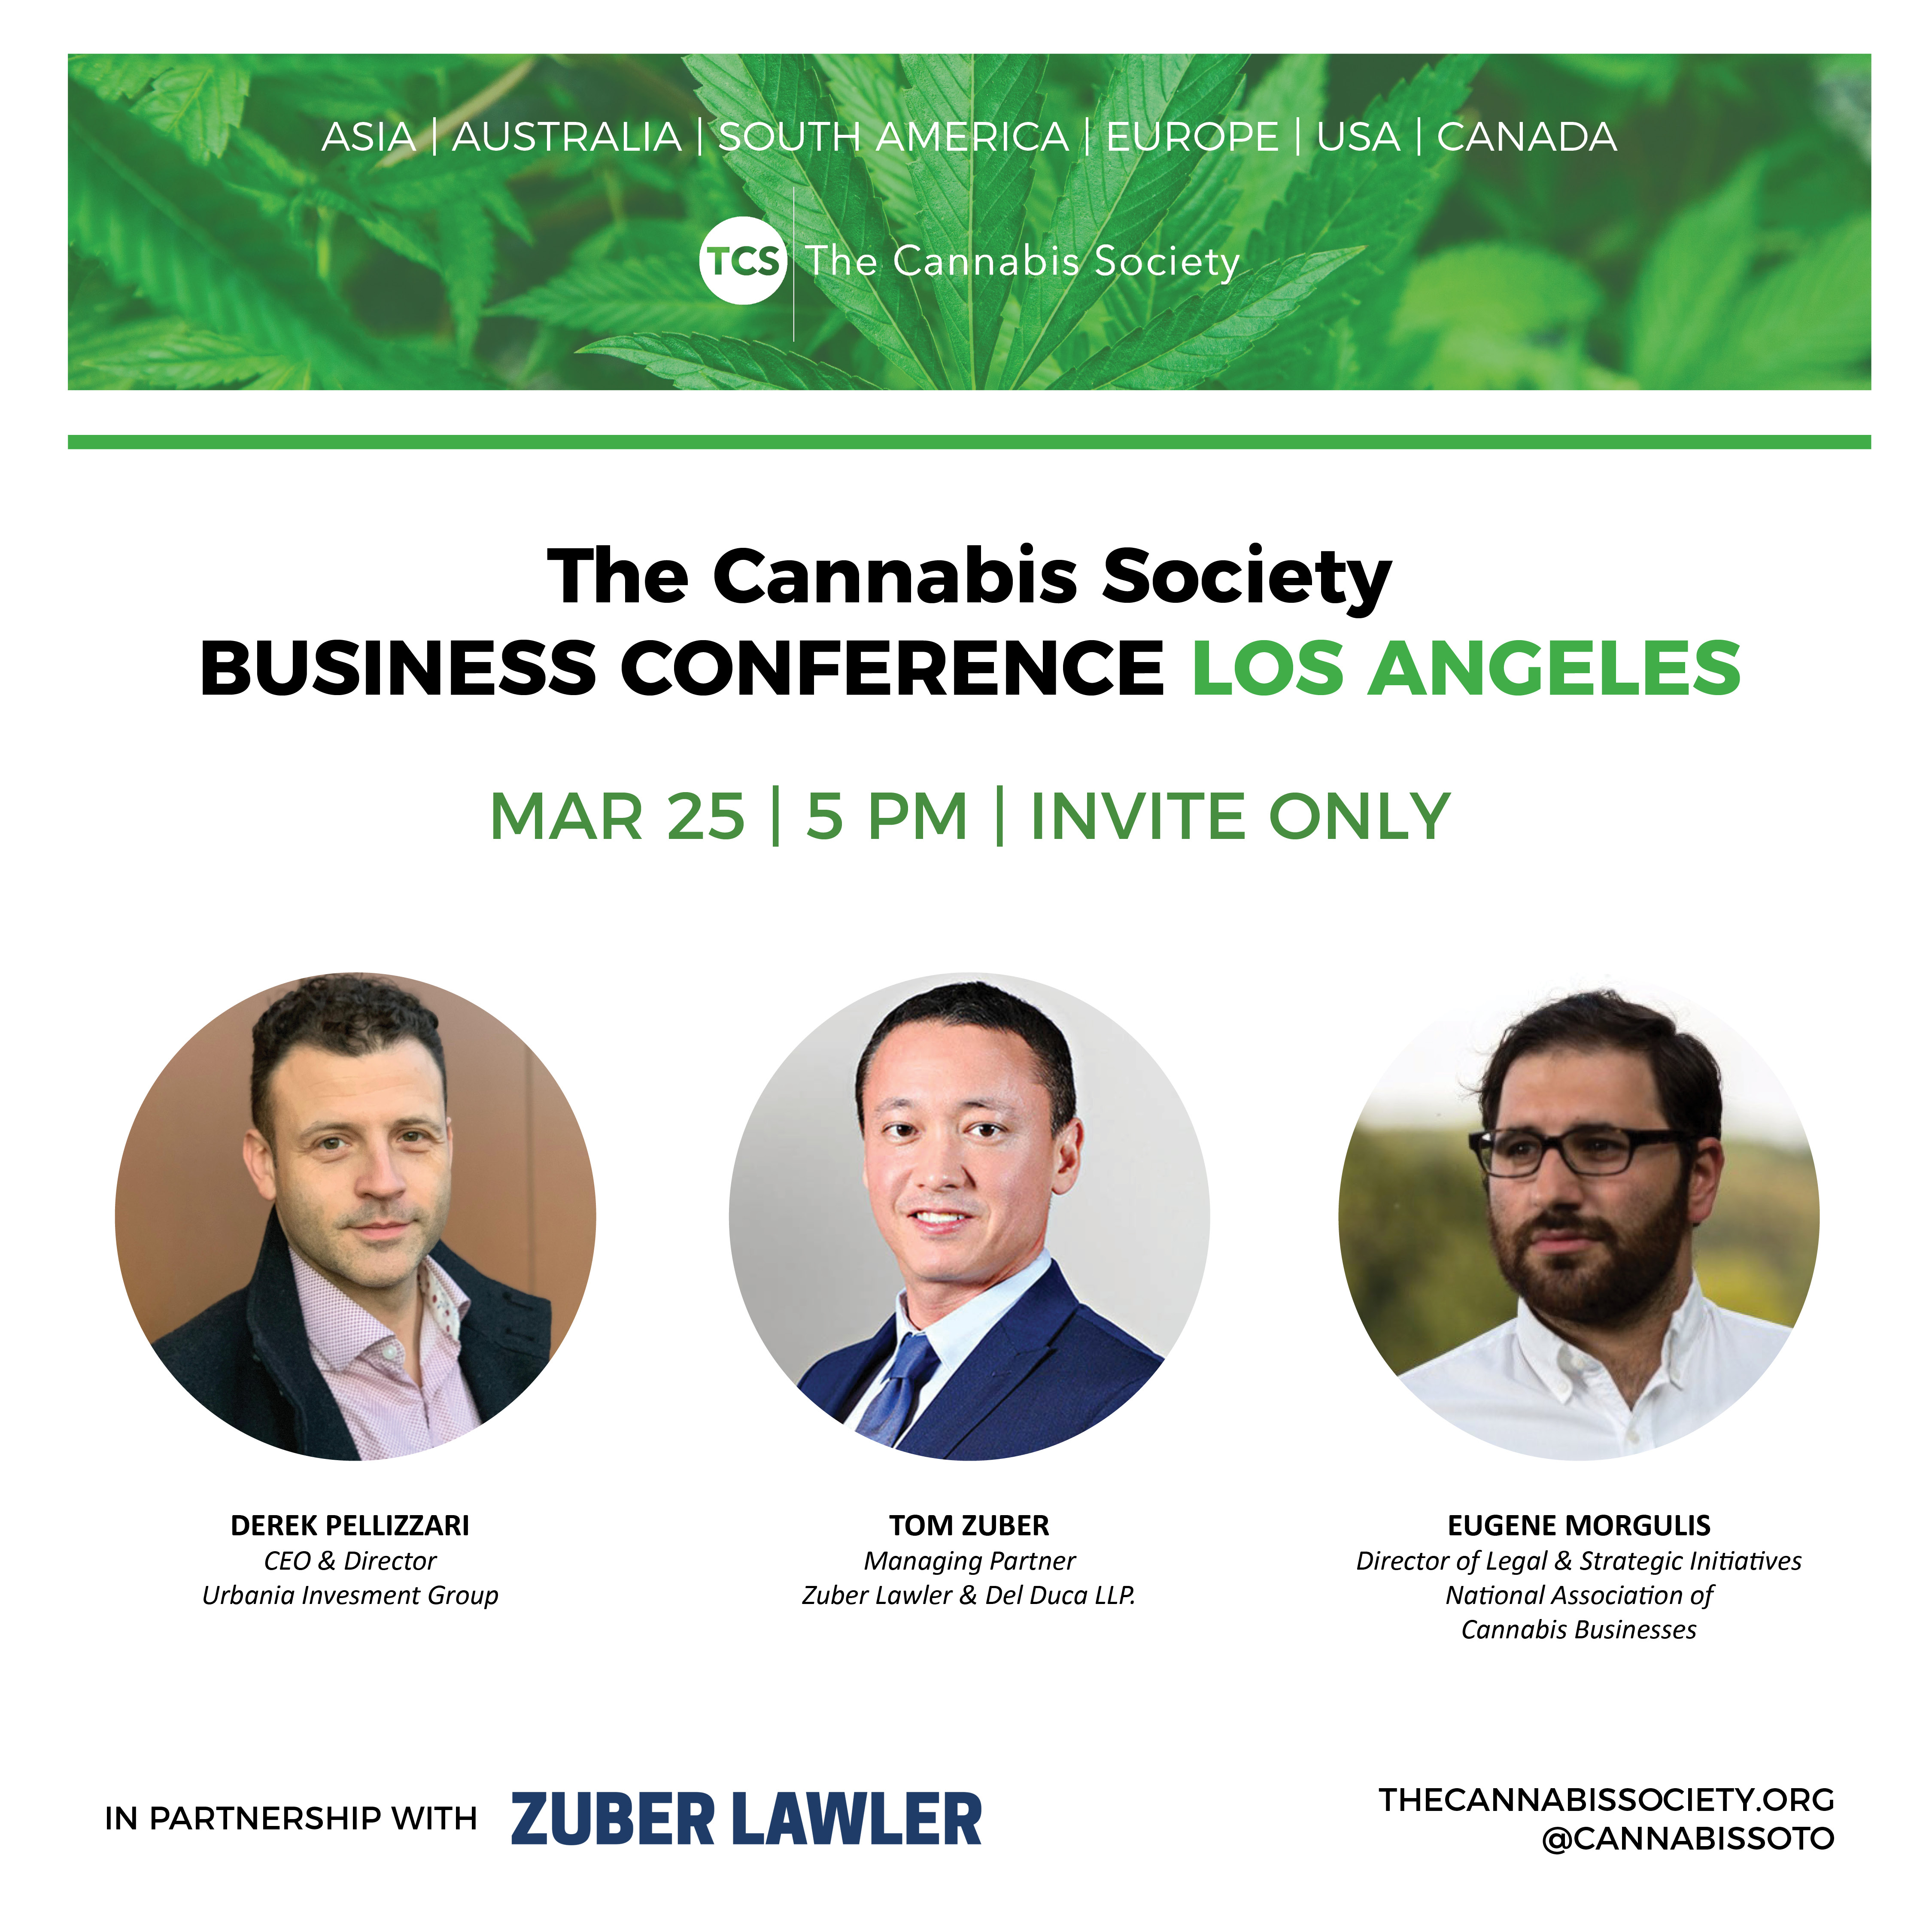 The Cannabis Society Business Conference LA (Invite Only